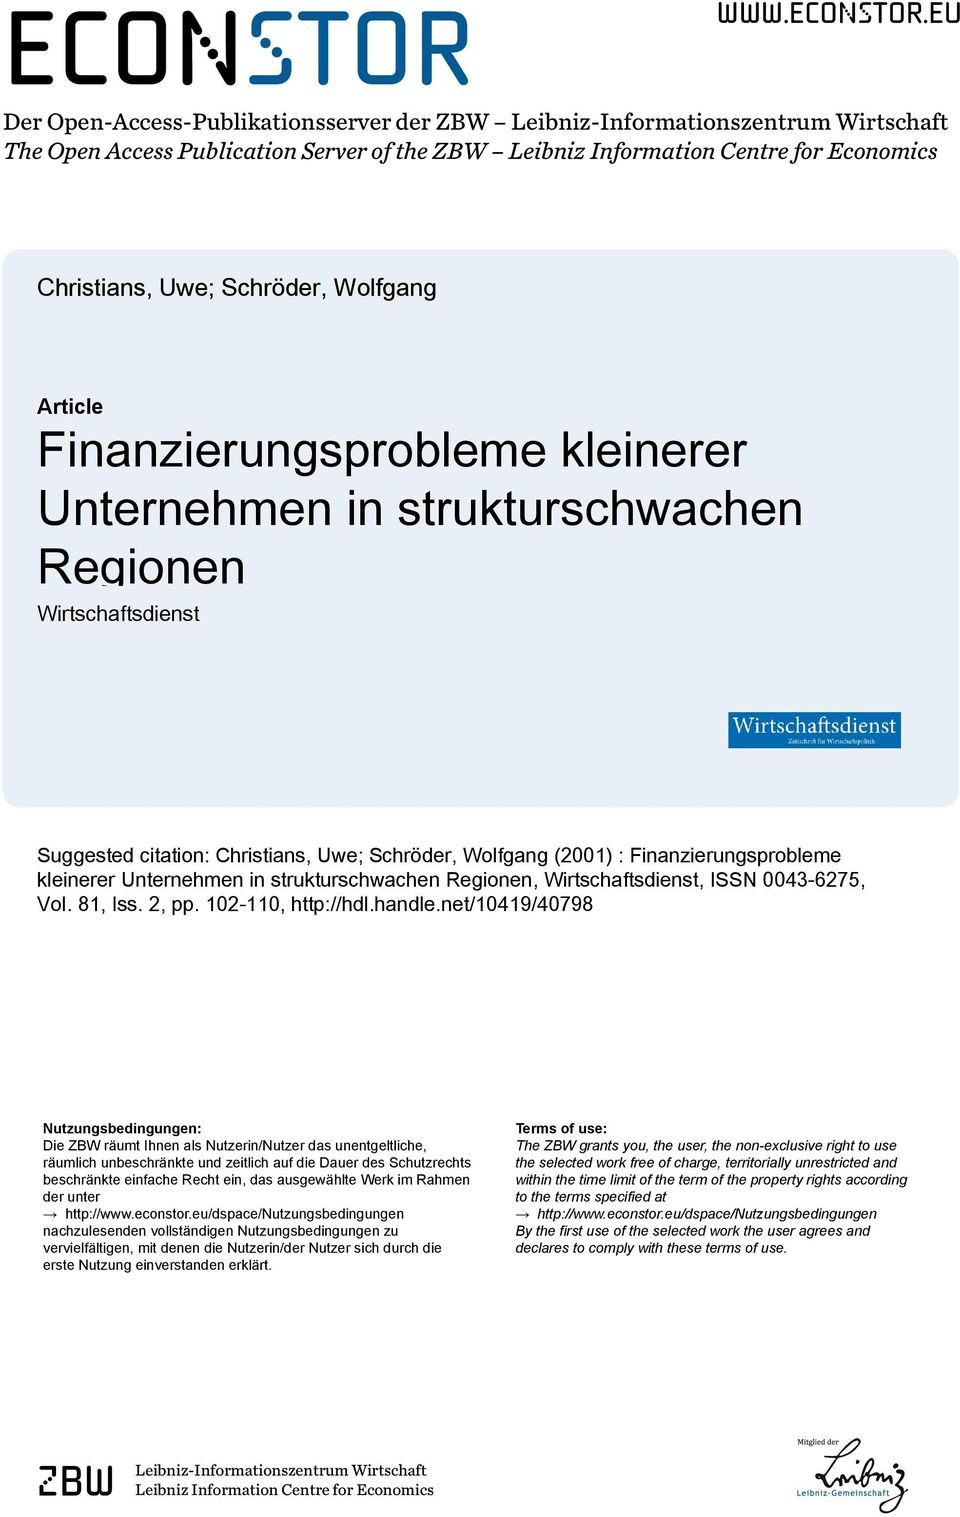 eu Der Open-Access-Publikationsserver der ZBW Leibniz-Informationszentrum Wirtschaft The Open Access Publication Server of the ZBW Leibniz Information Centre for Economics Christians, Uwe; Schröder,